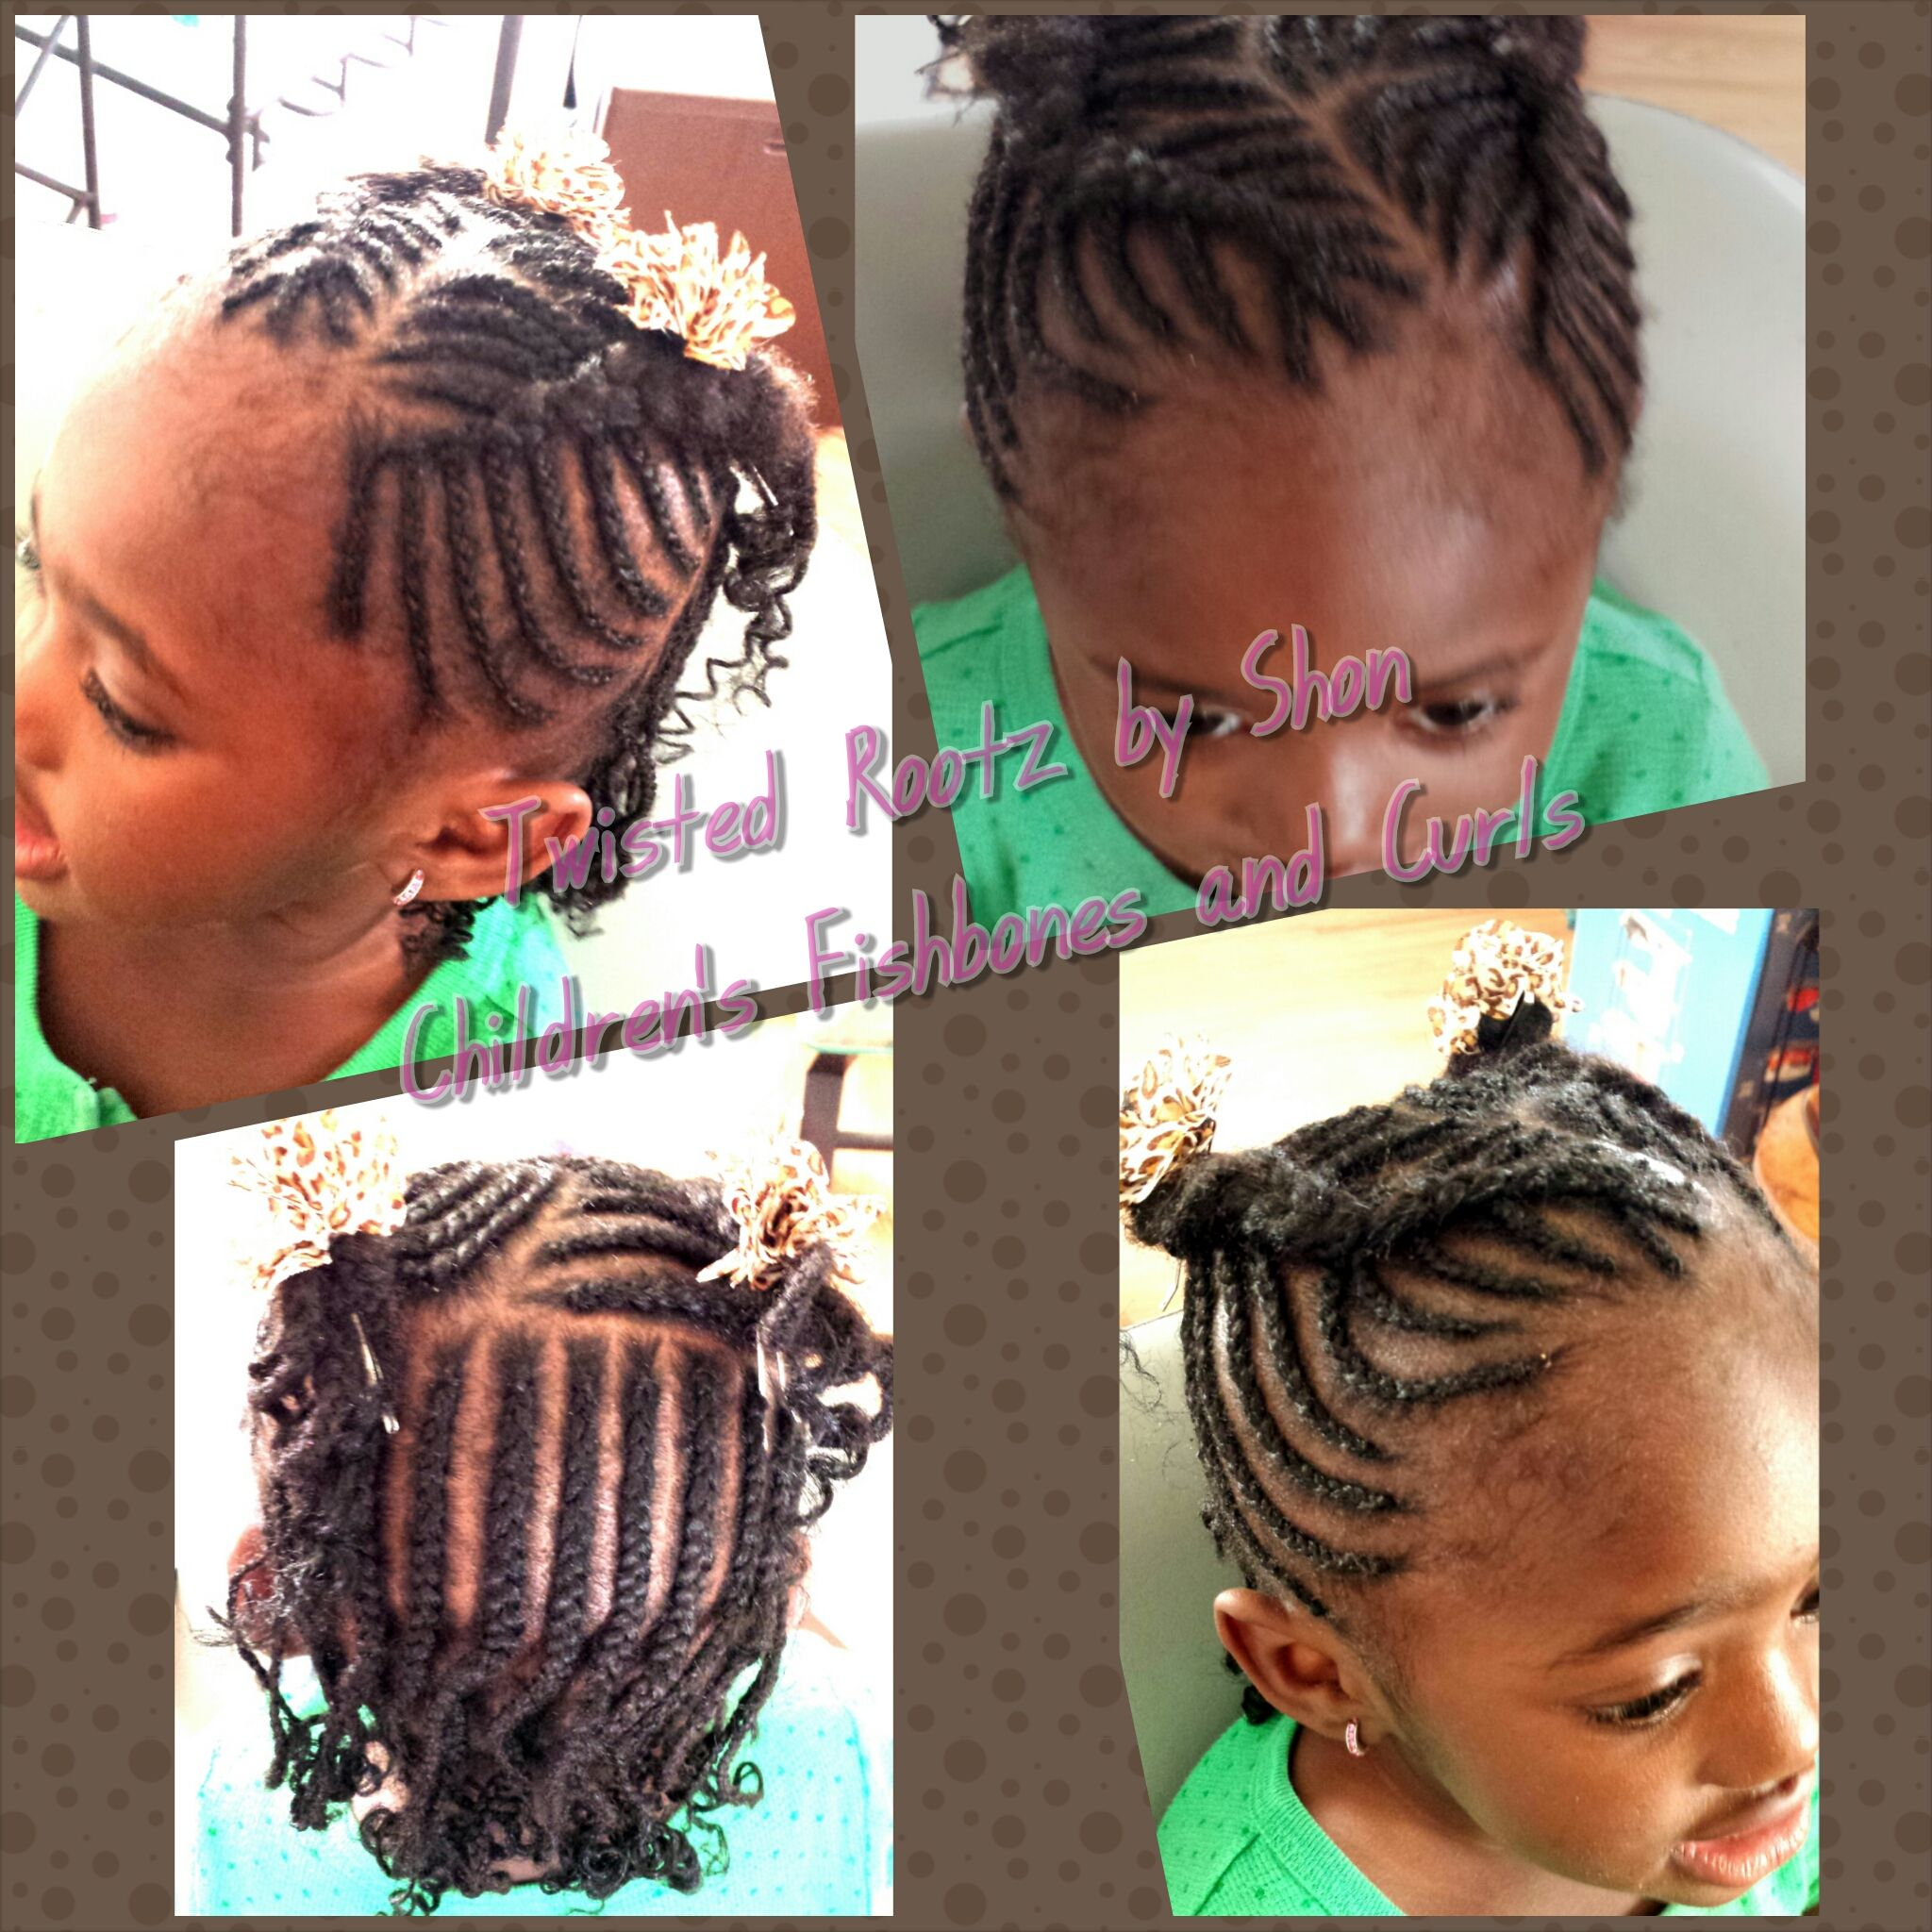 Childrenus mohawk with curls follow me on ig twistedrootzbyshon